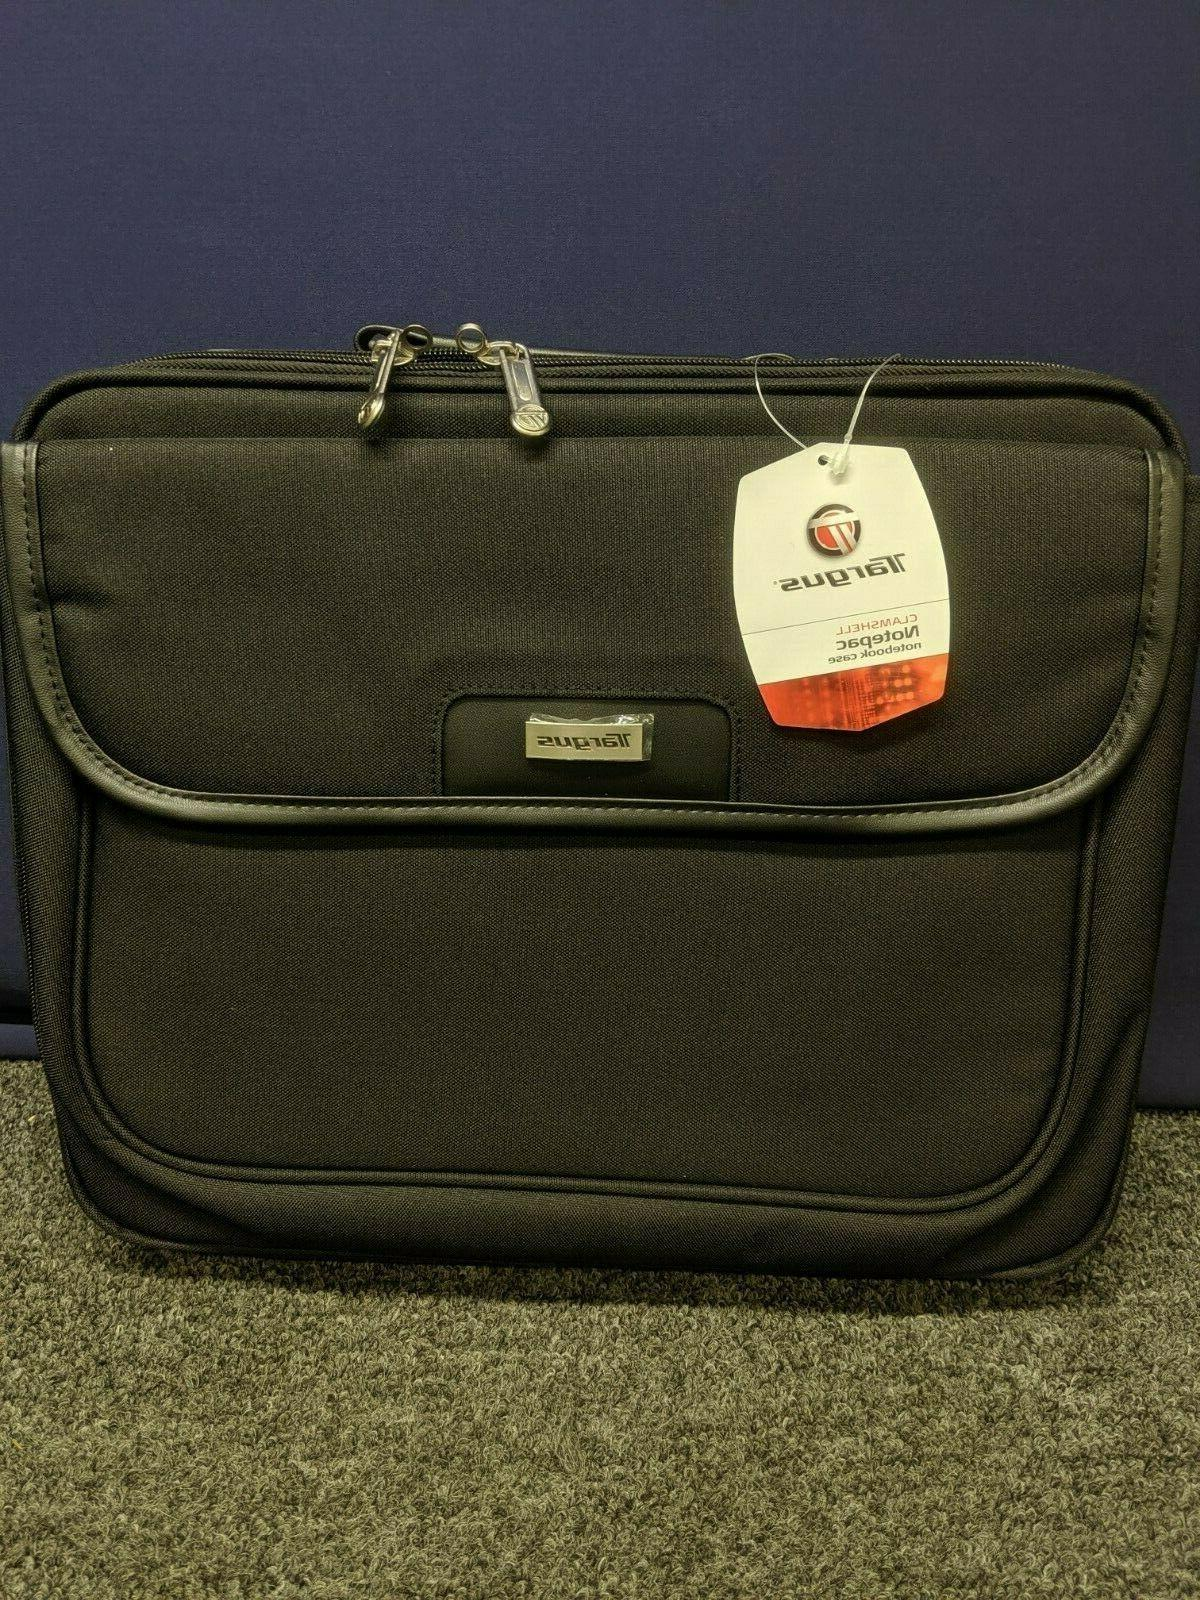 clamshell notepac notebook laptop case black 15